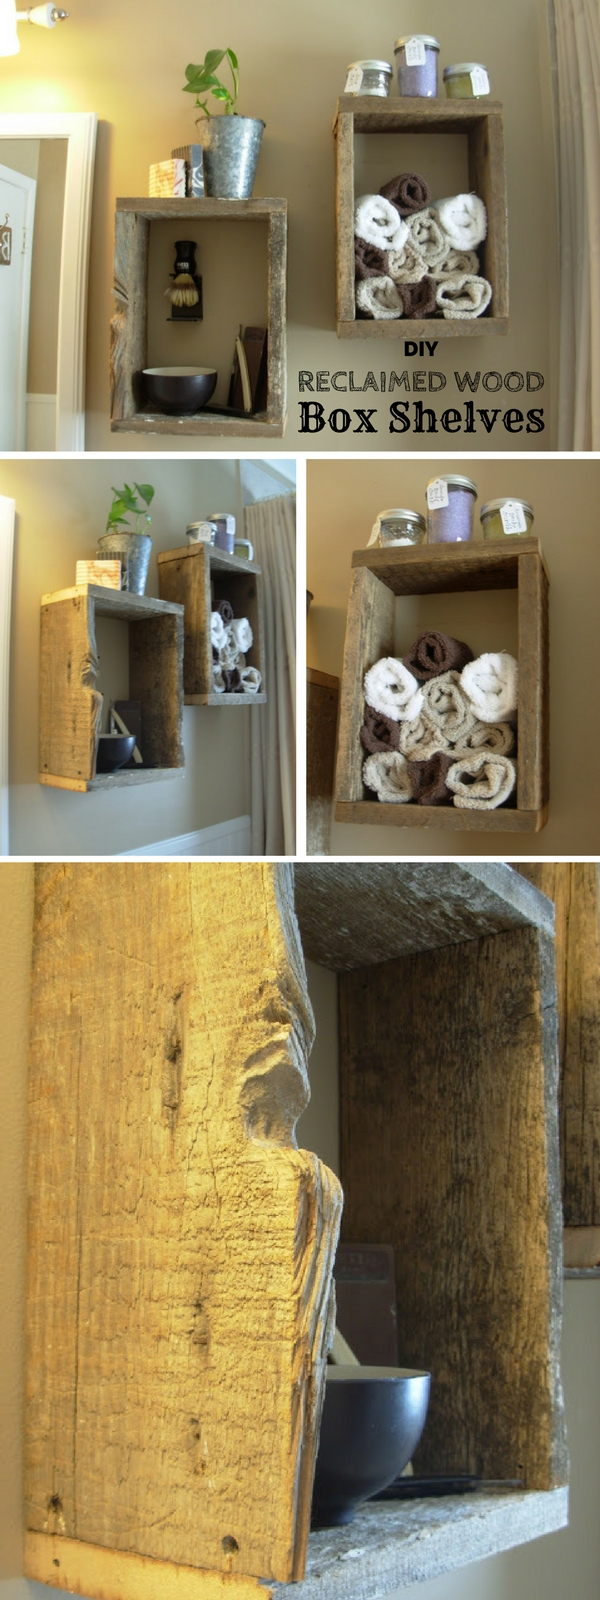 #DIY Reclaimed Wood Box Shelves for rustic bathroom decor #bathroomdecor